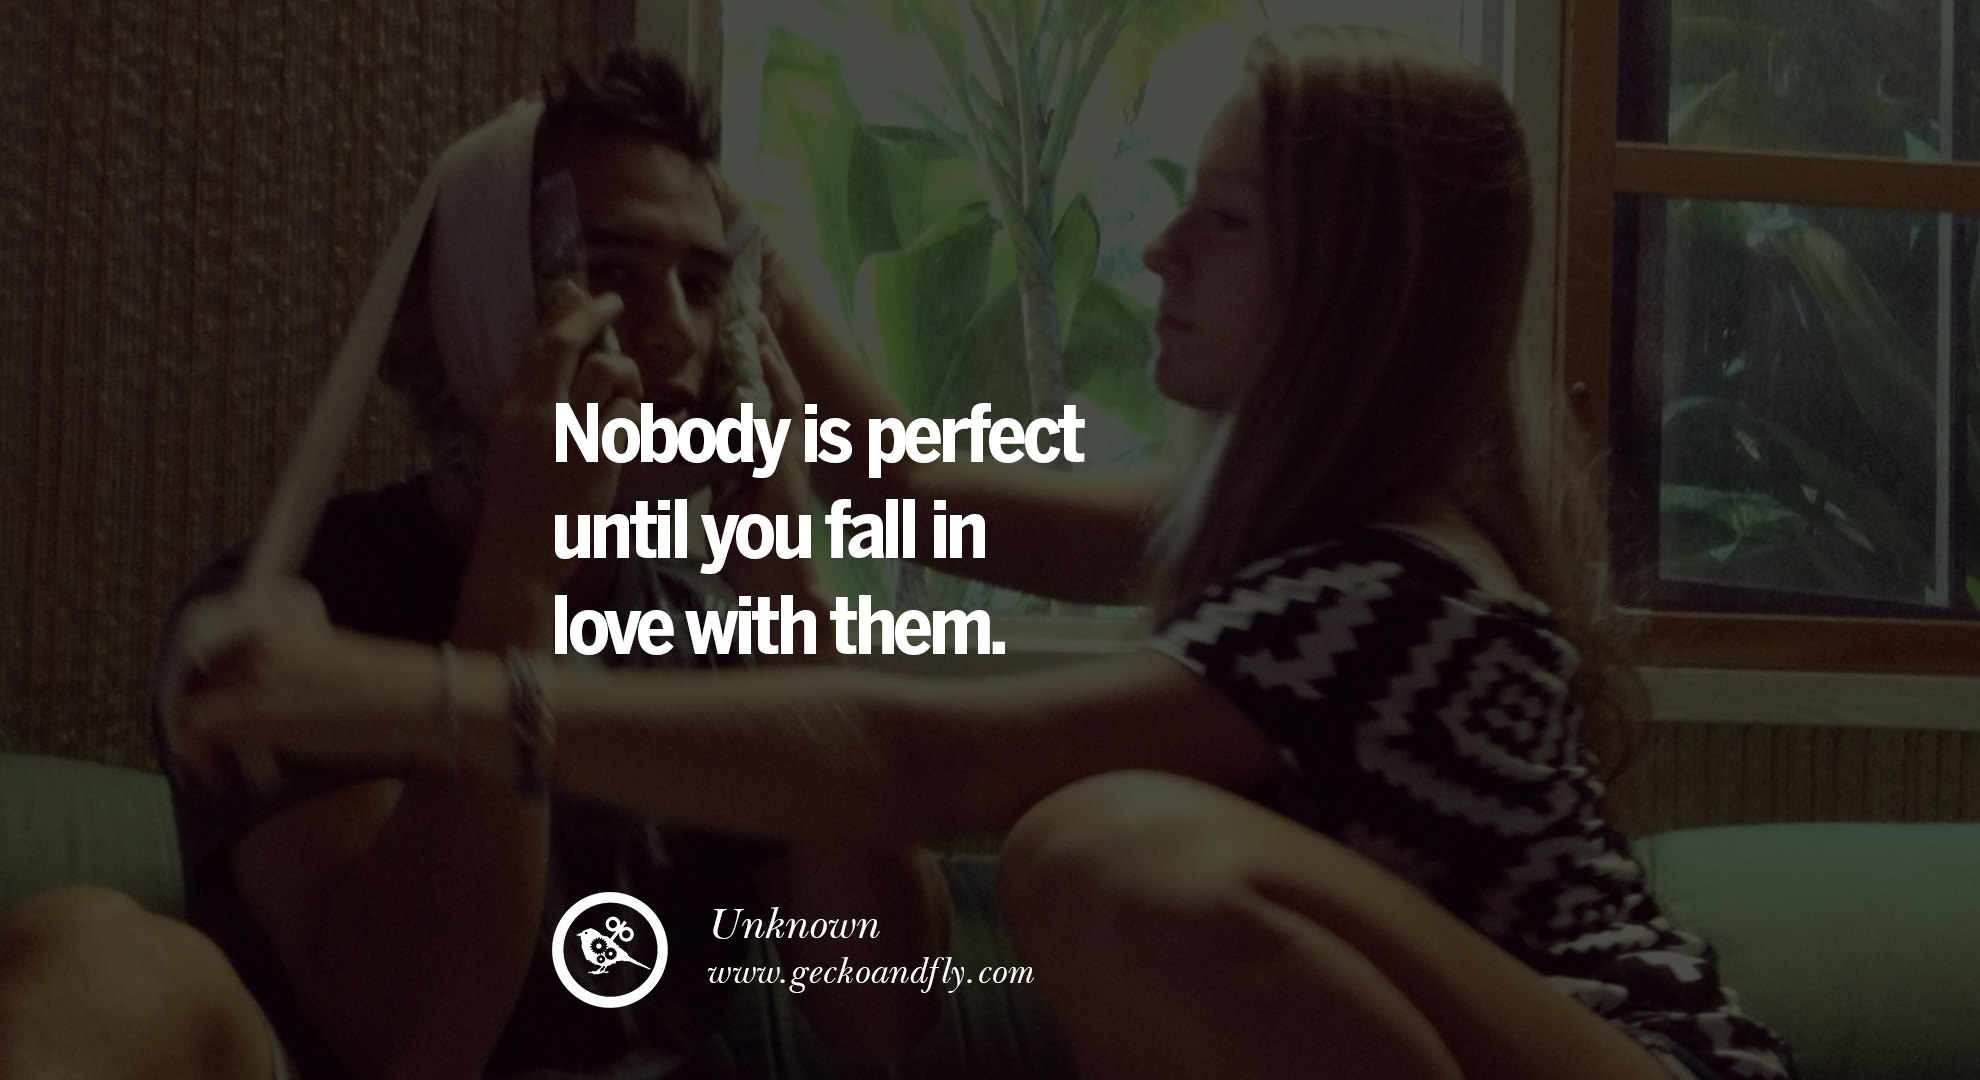 40 Romantic Quotes About Love Life, Marriage And Relationships